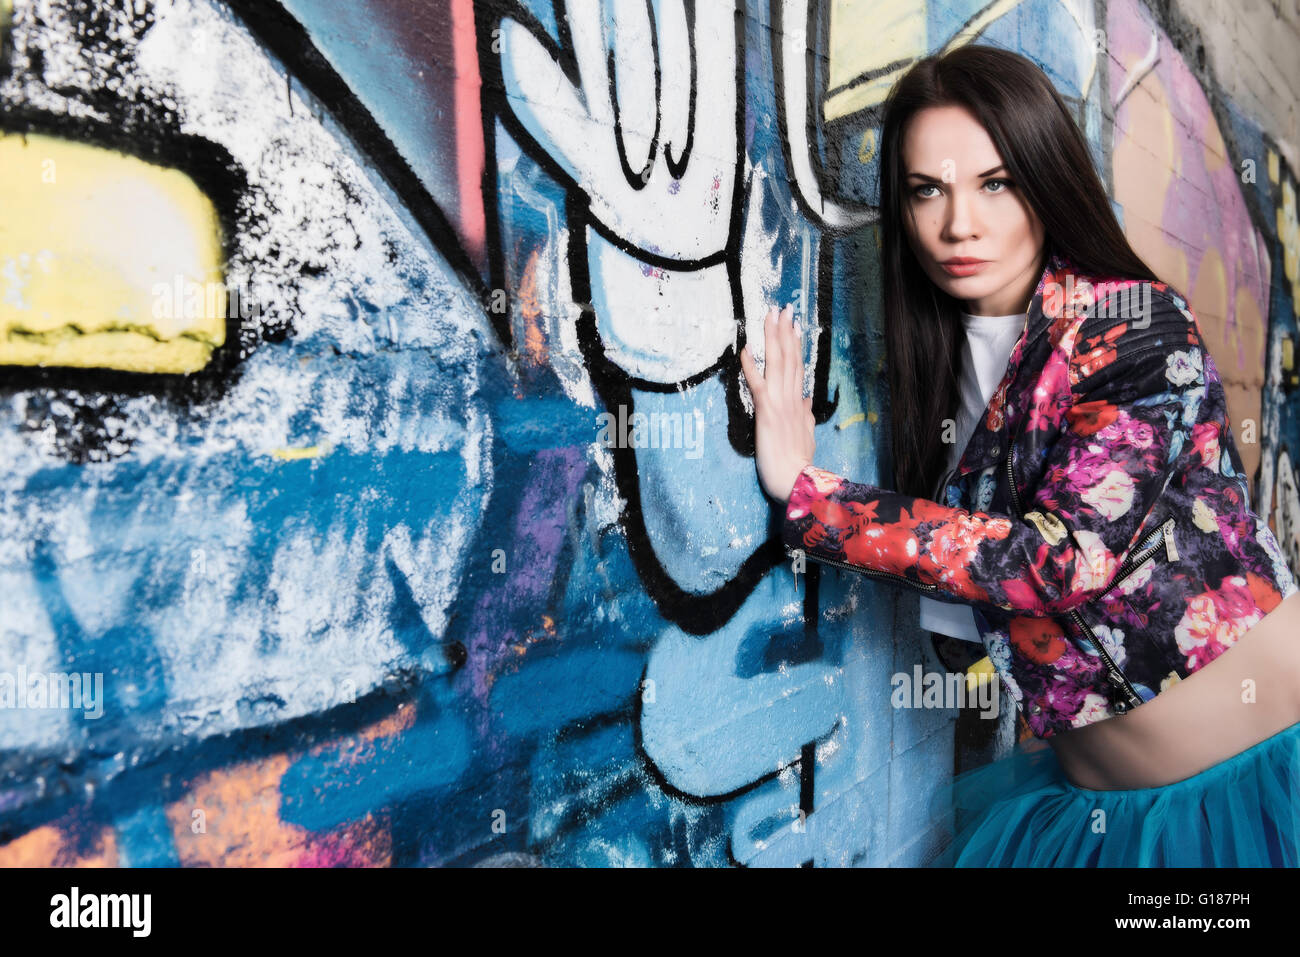 Urban Photo Shoot Photoshoot Fashion Stock Photos Photoshoot Fashion Stock Images